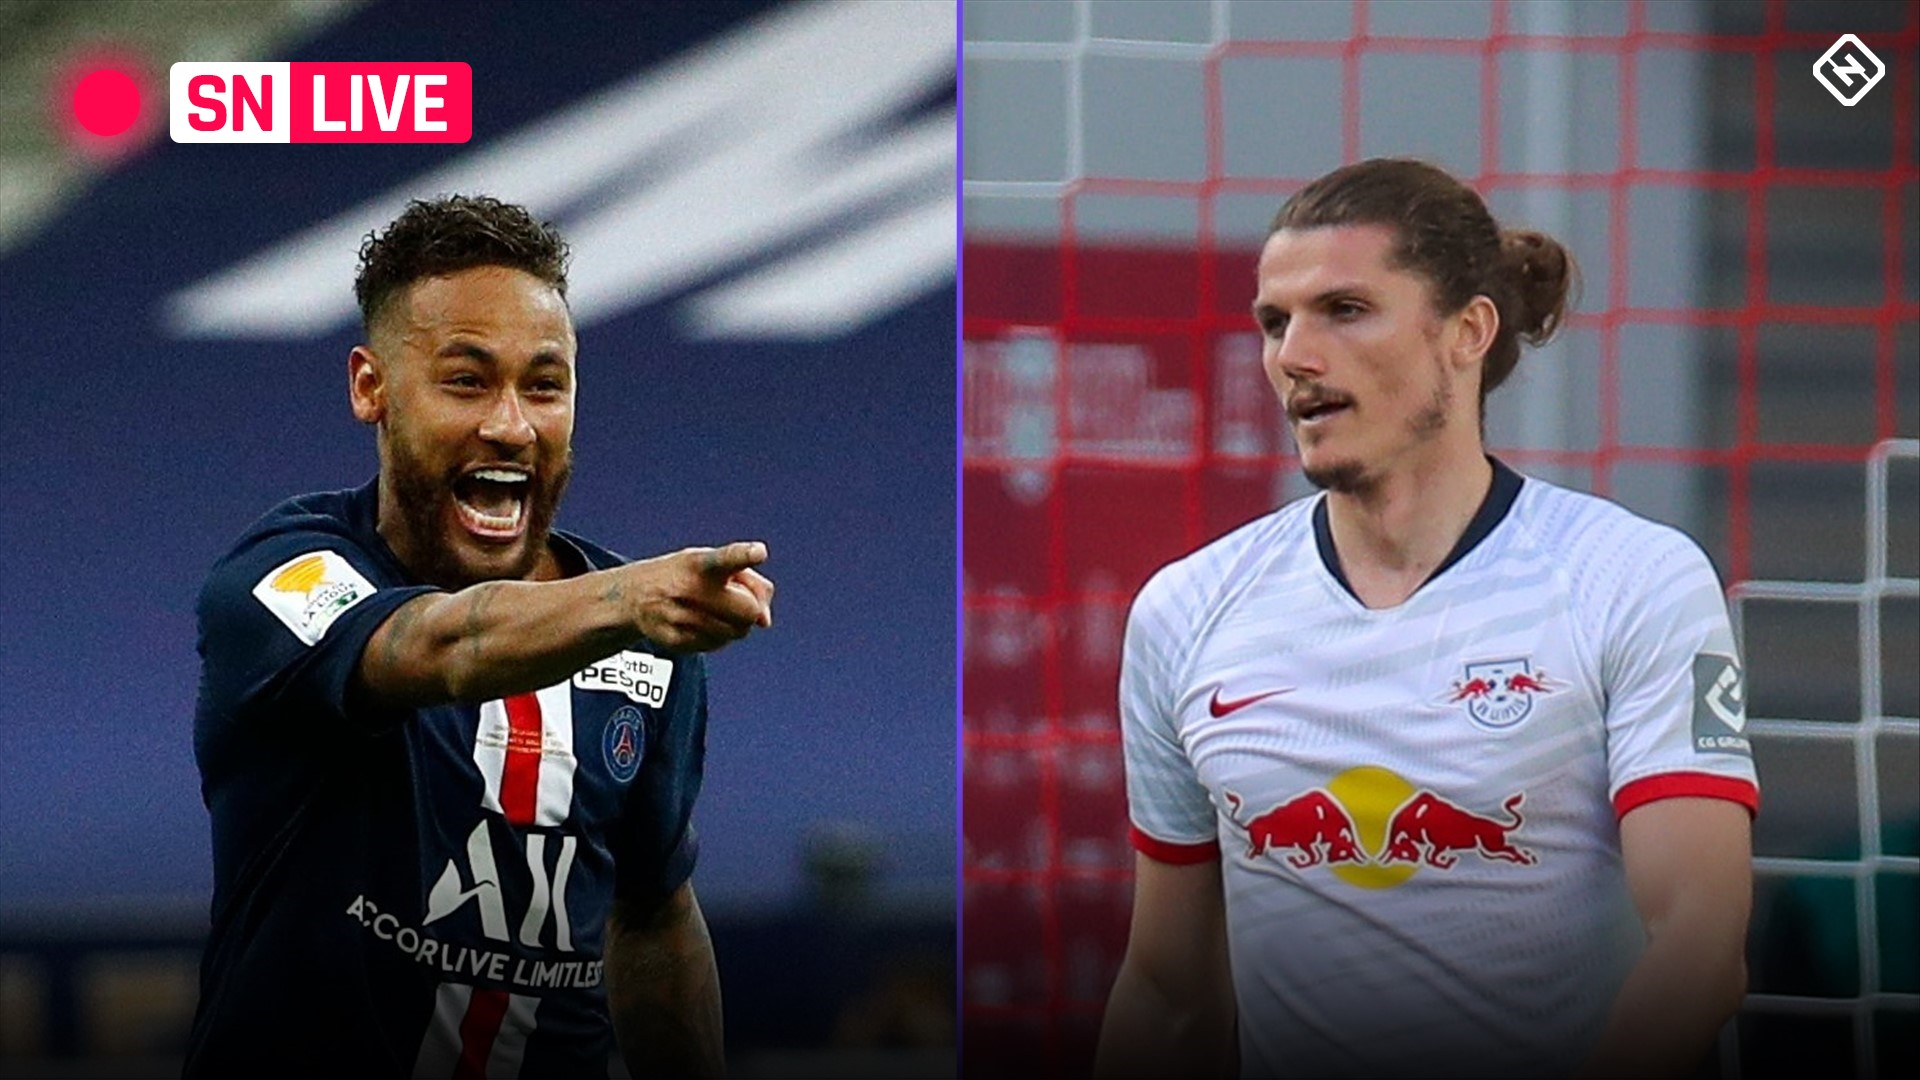 Psg Vs Rb Leipzig Live Score Updates Highlights From 2020 Champions League Semifinal Report Door